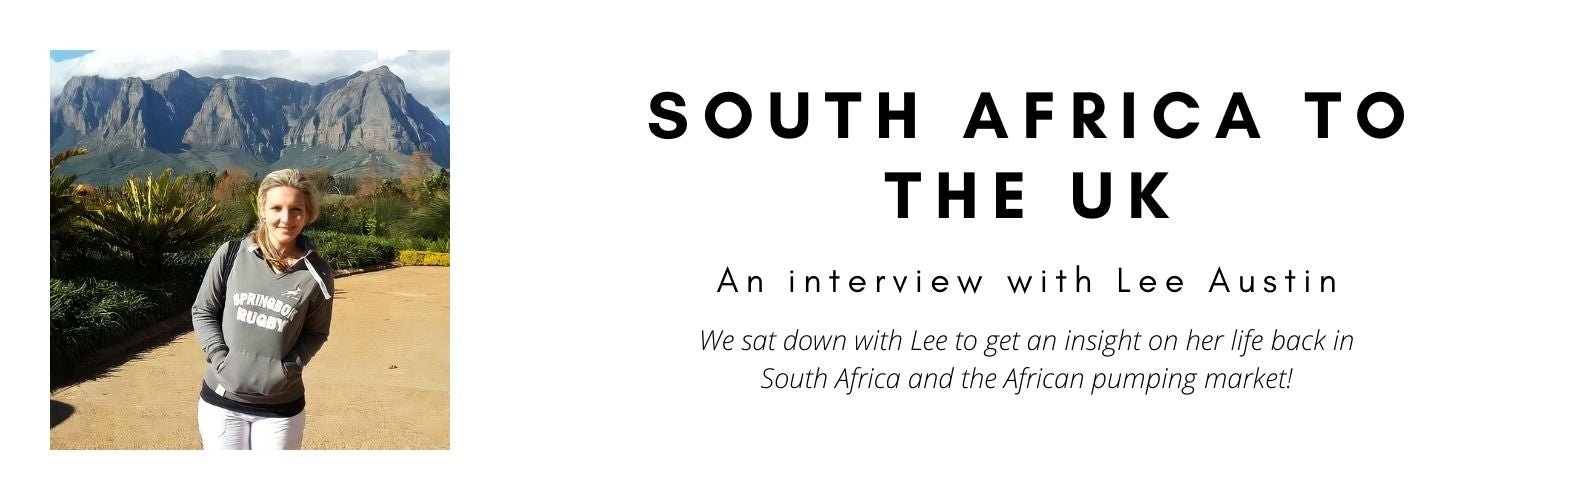 We sat down with Lee Austin to get an insight on her life back in South Africa and the African pumping market!